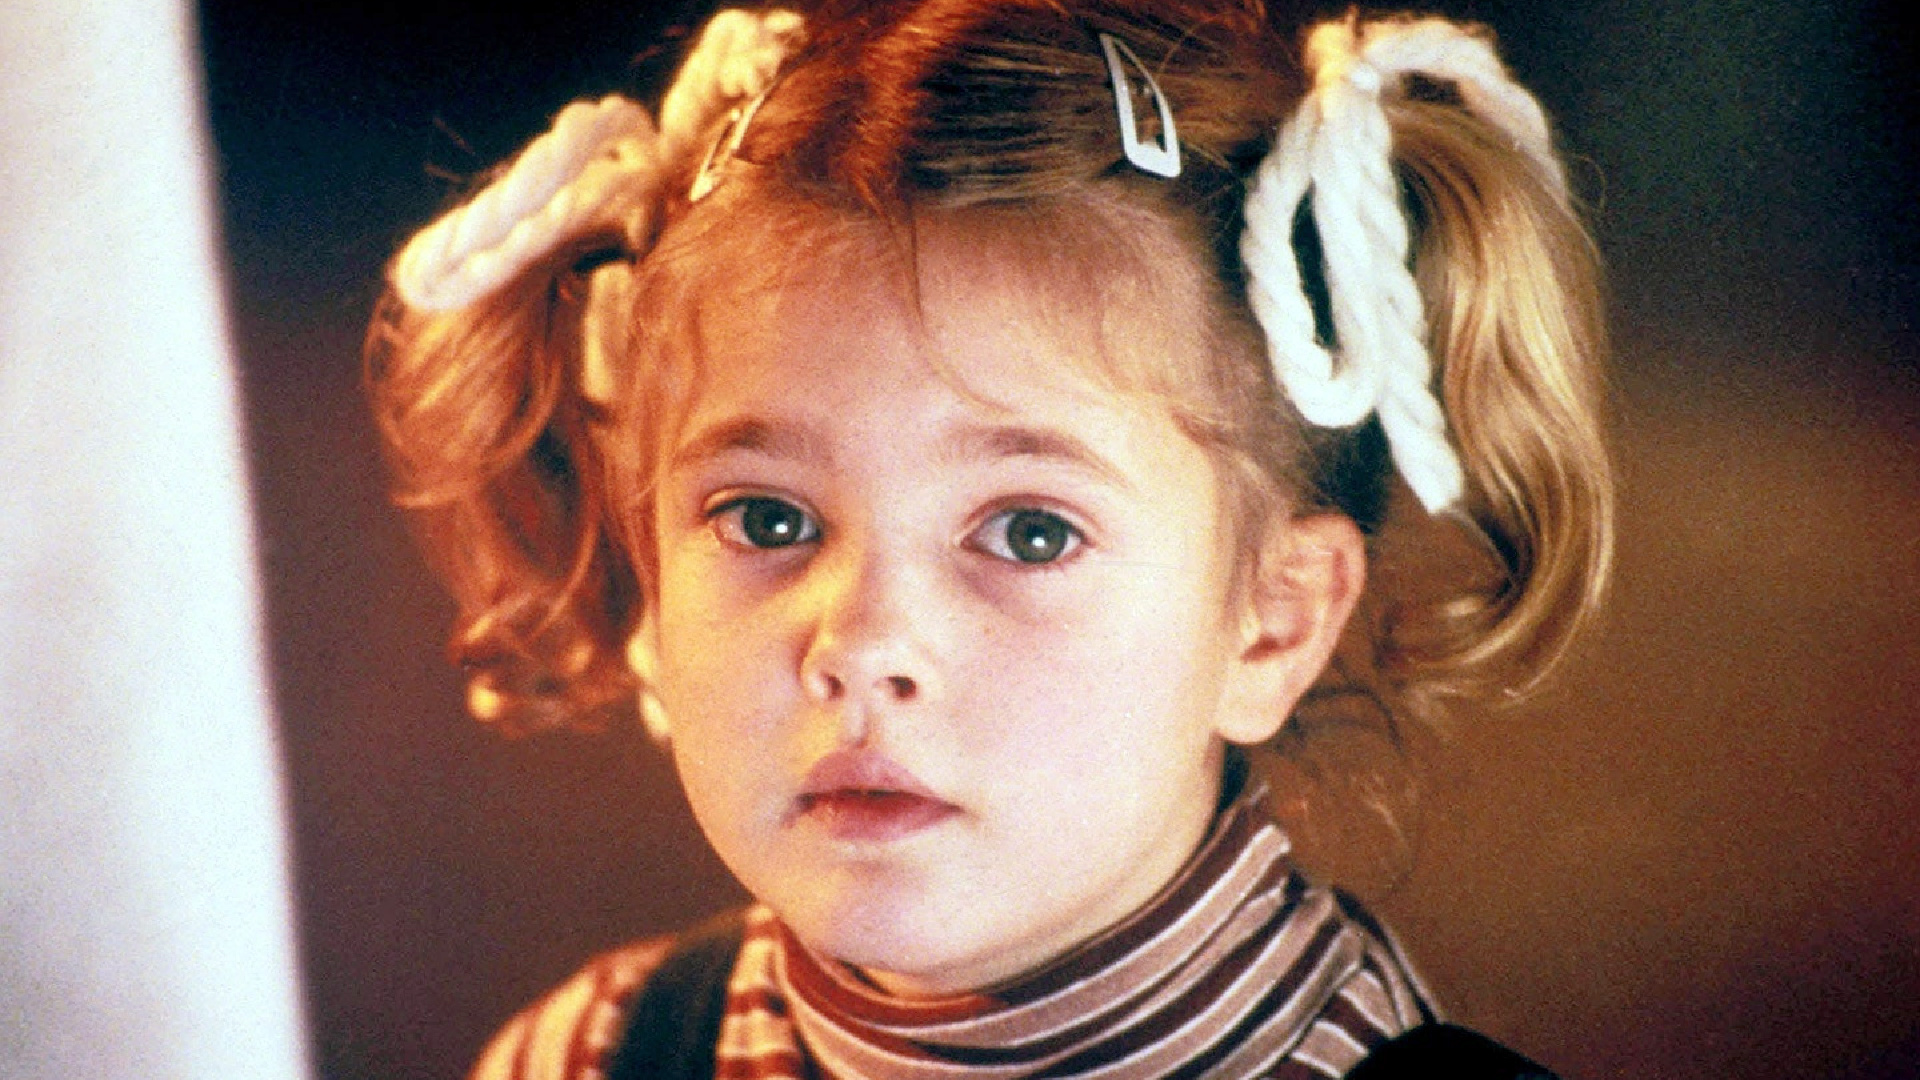 The shocking story of Drew Barrymore's childhood addictions